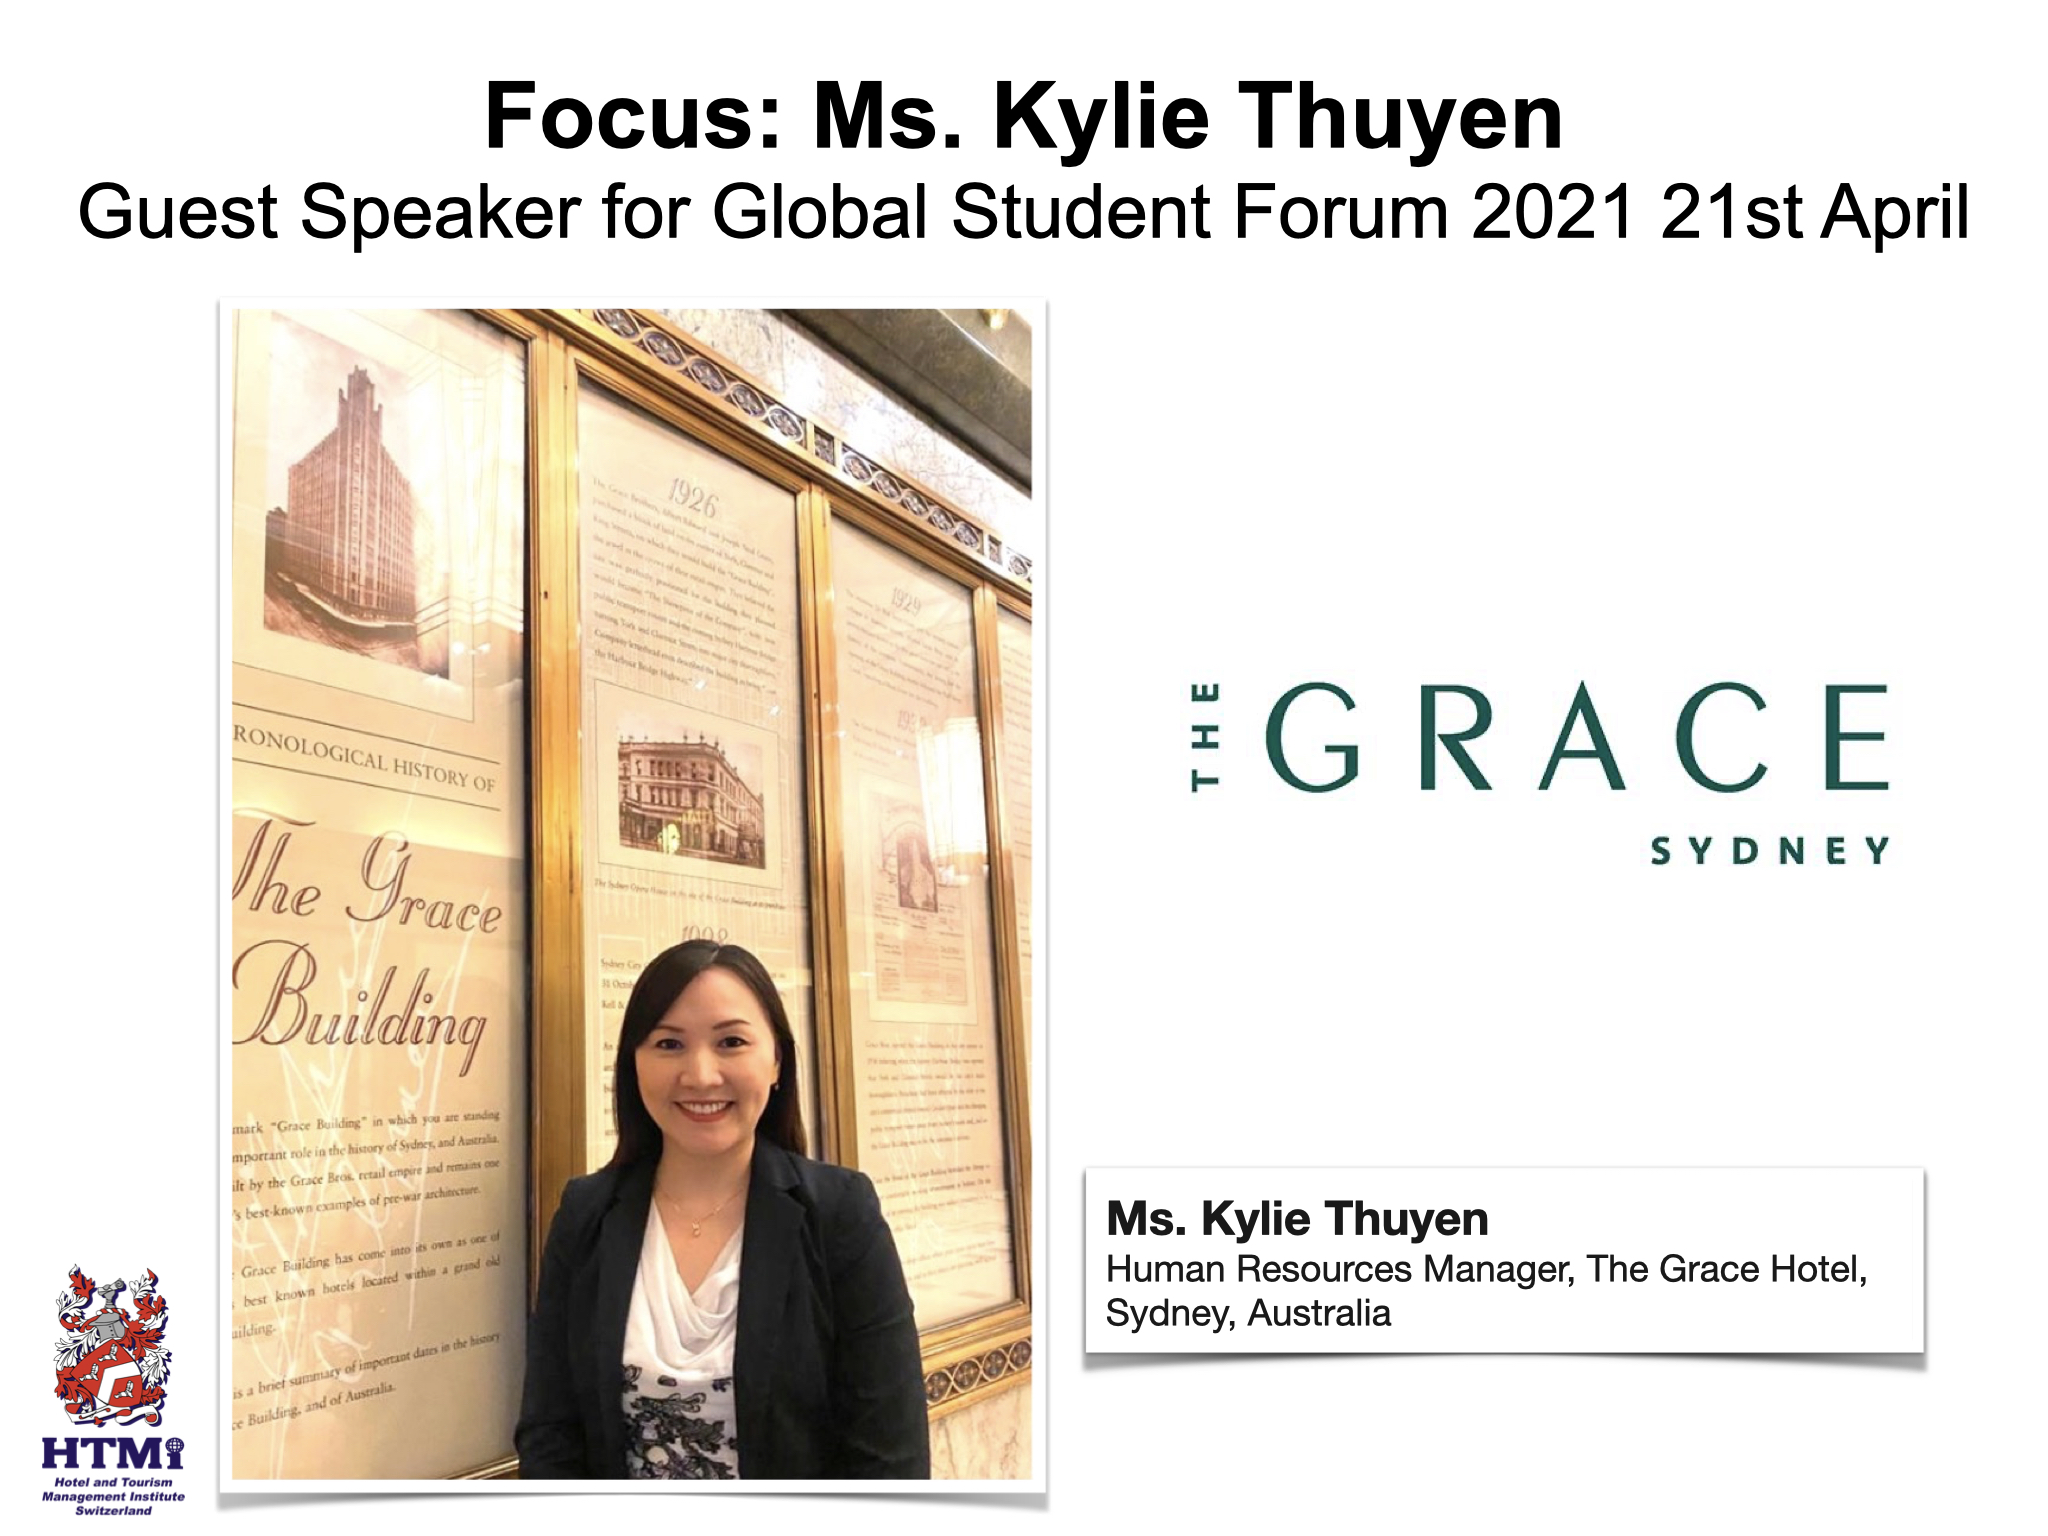 Focus: Ms. Kylie Thuyen Guest Speaker for Global Student Forum 2021 22nd April